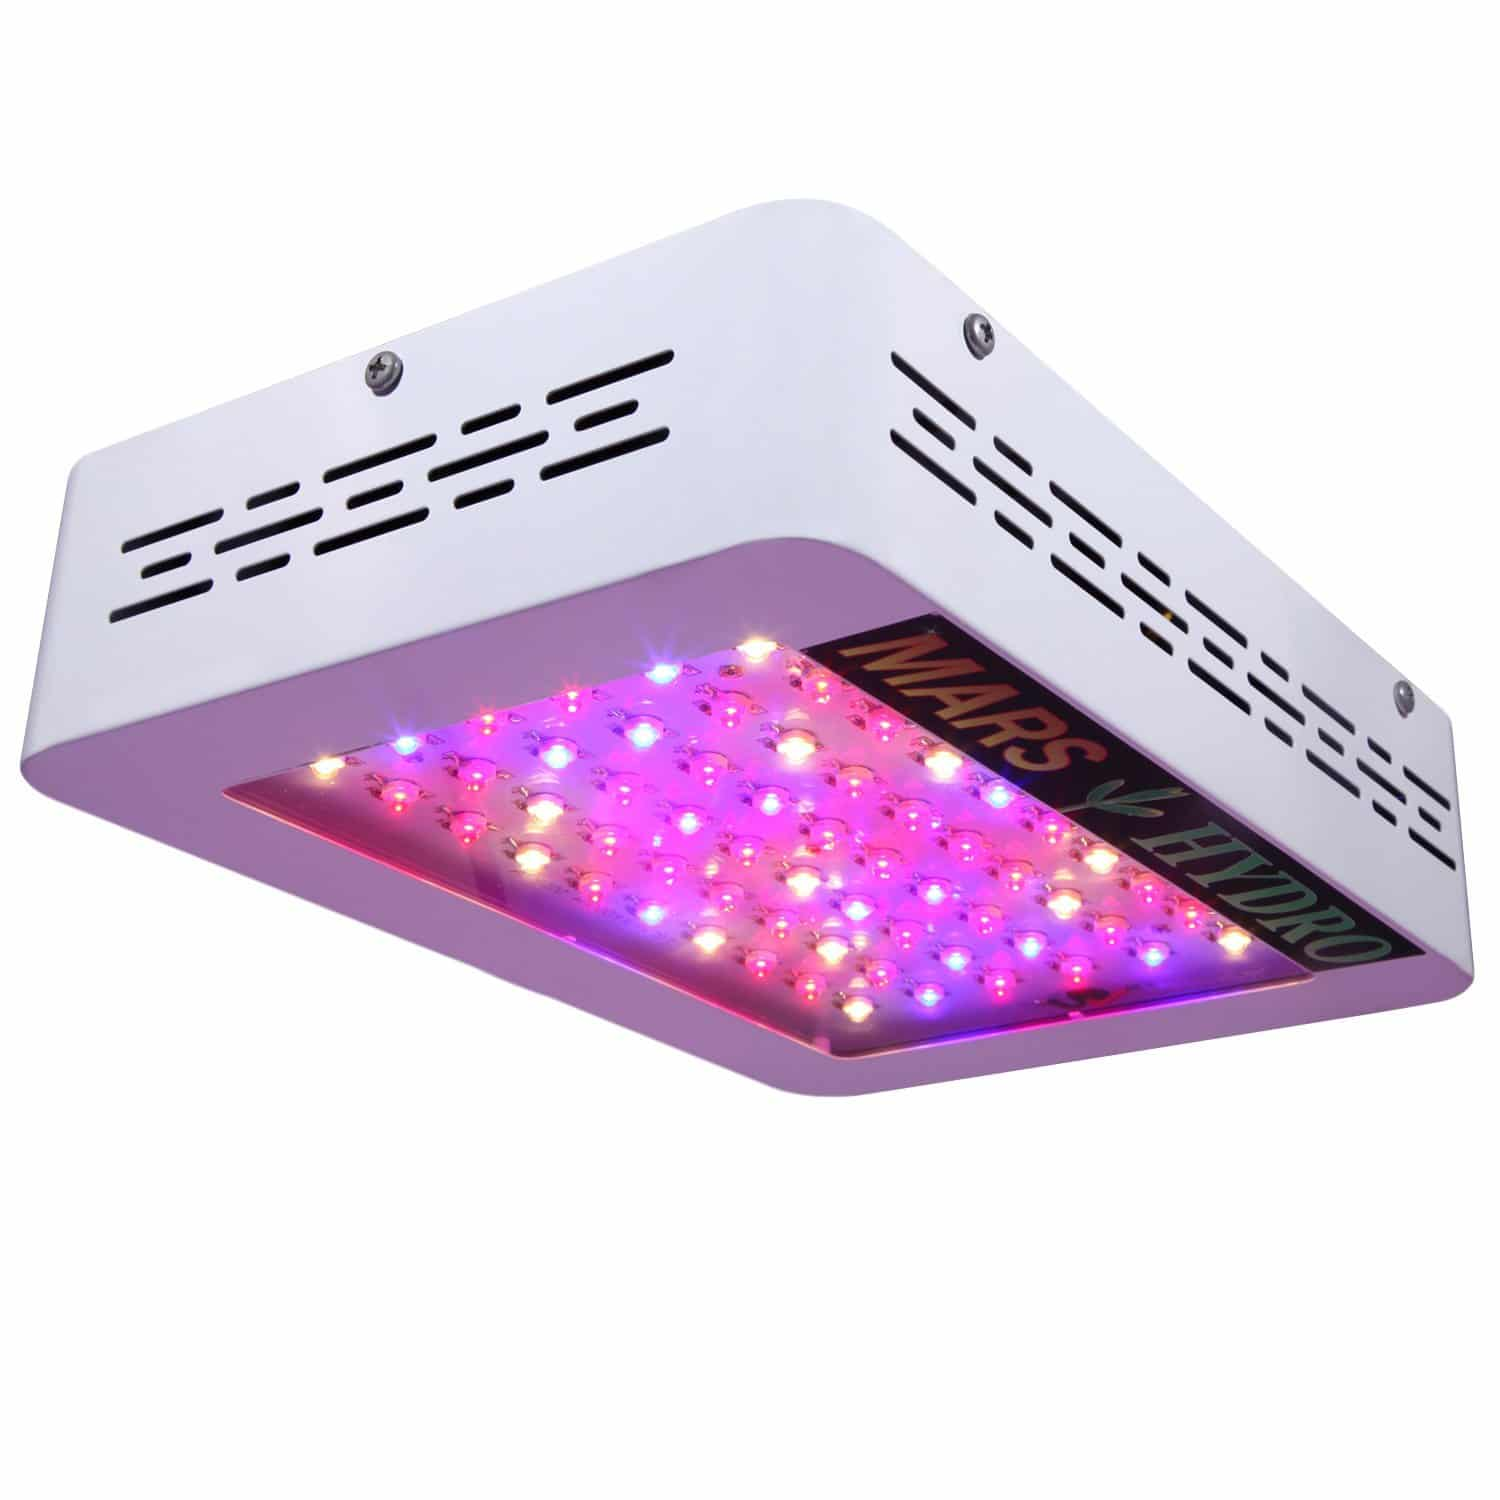 Mars Hydro Mars 300w LED Grow Light with Veg/Bloom Spectrum for Indoor Tent Growing 132W True Watt Panel